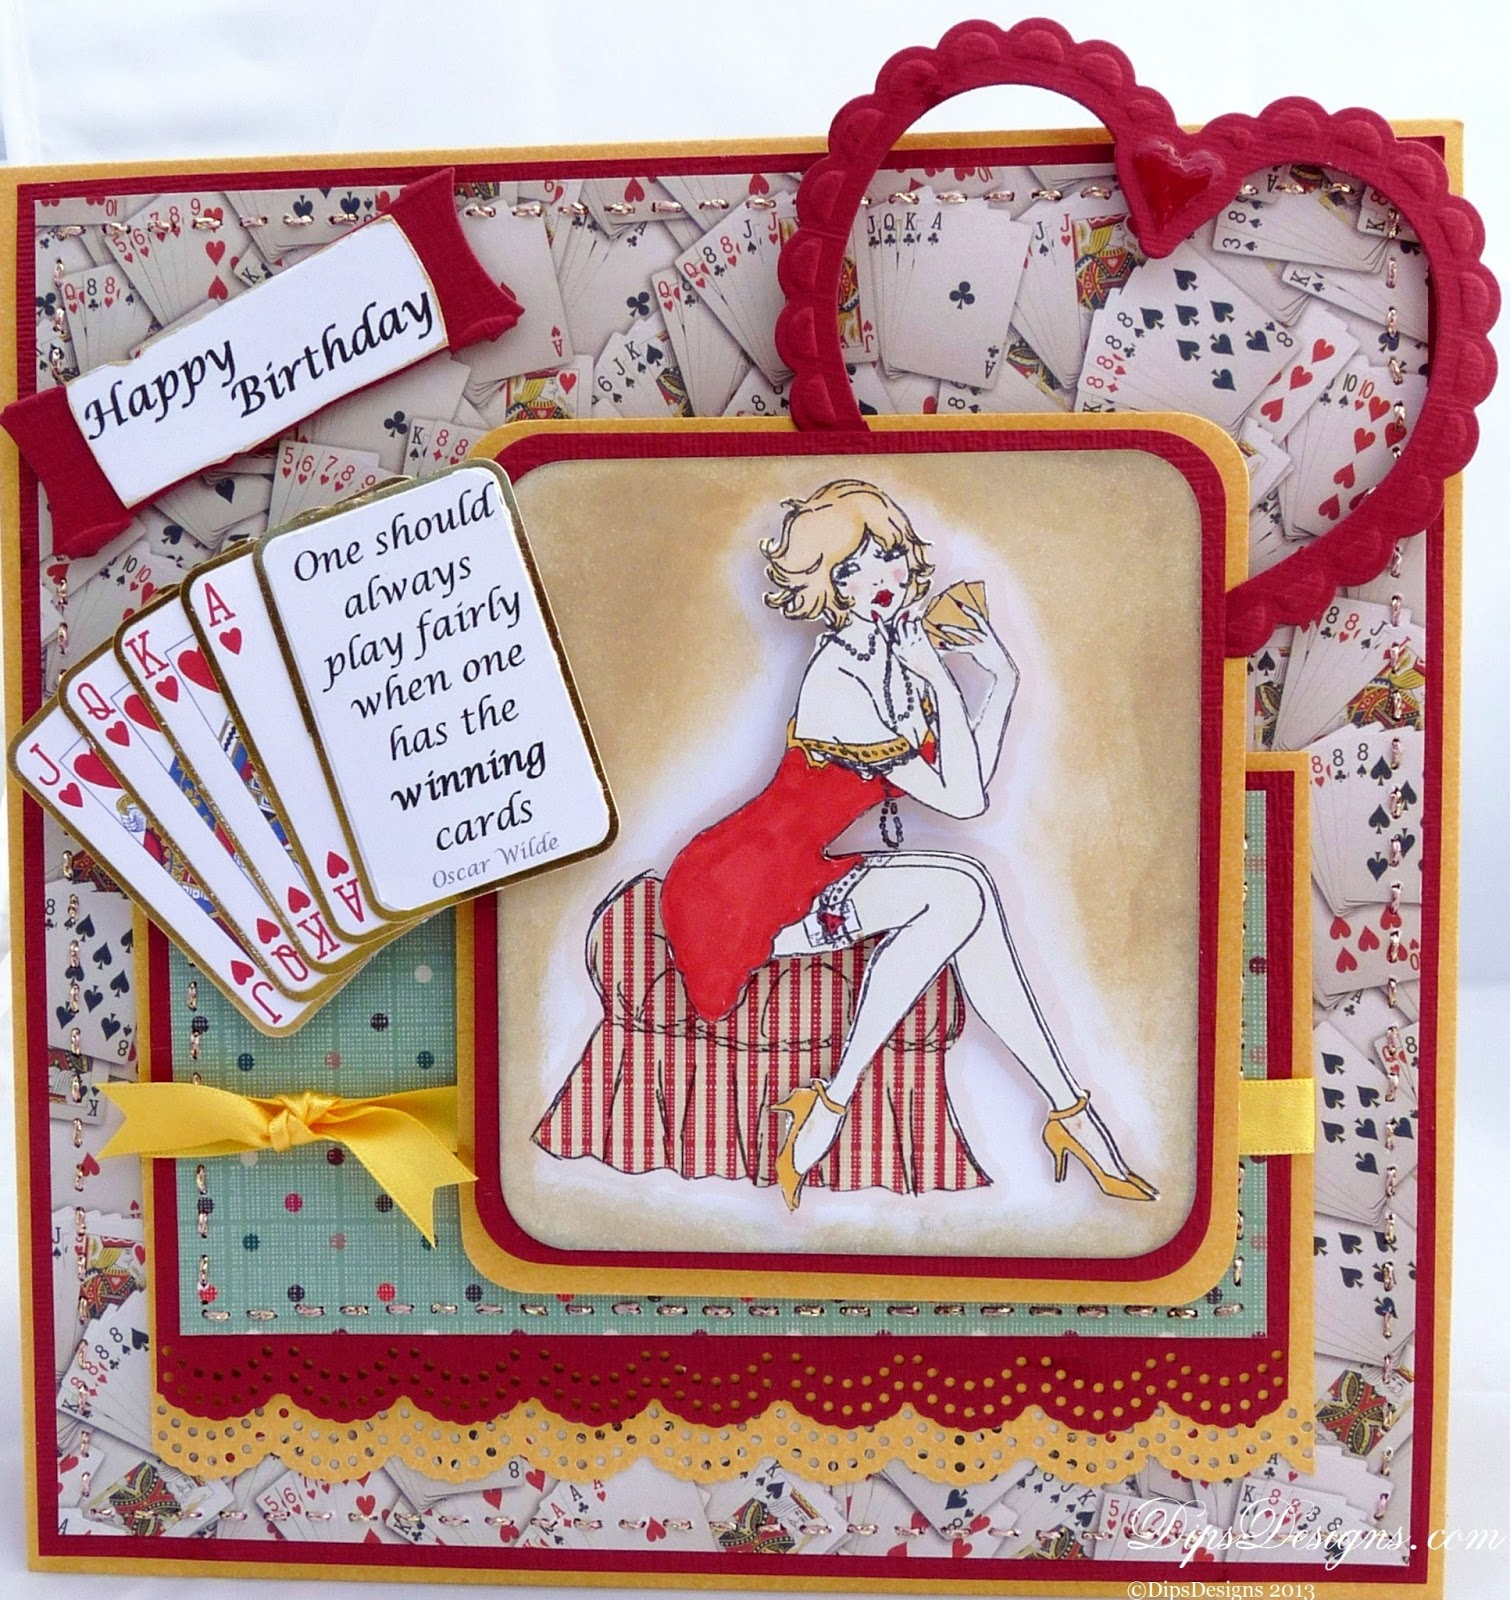 DipsDesigns: Poker Face Saucy Birthday Card